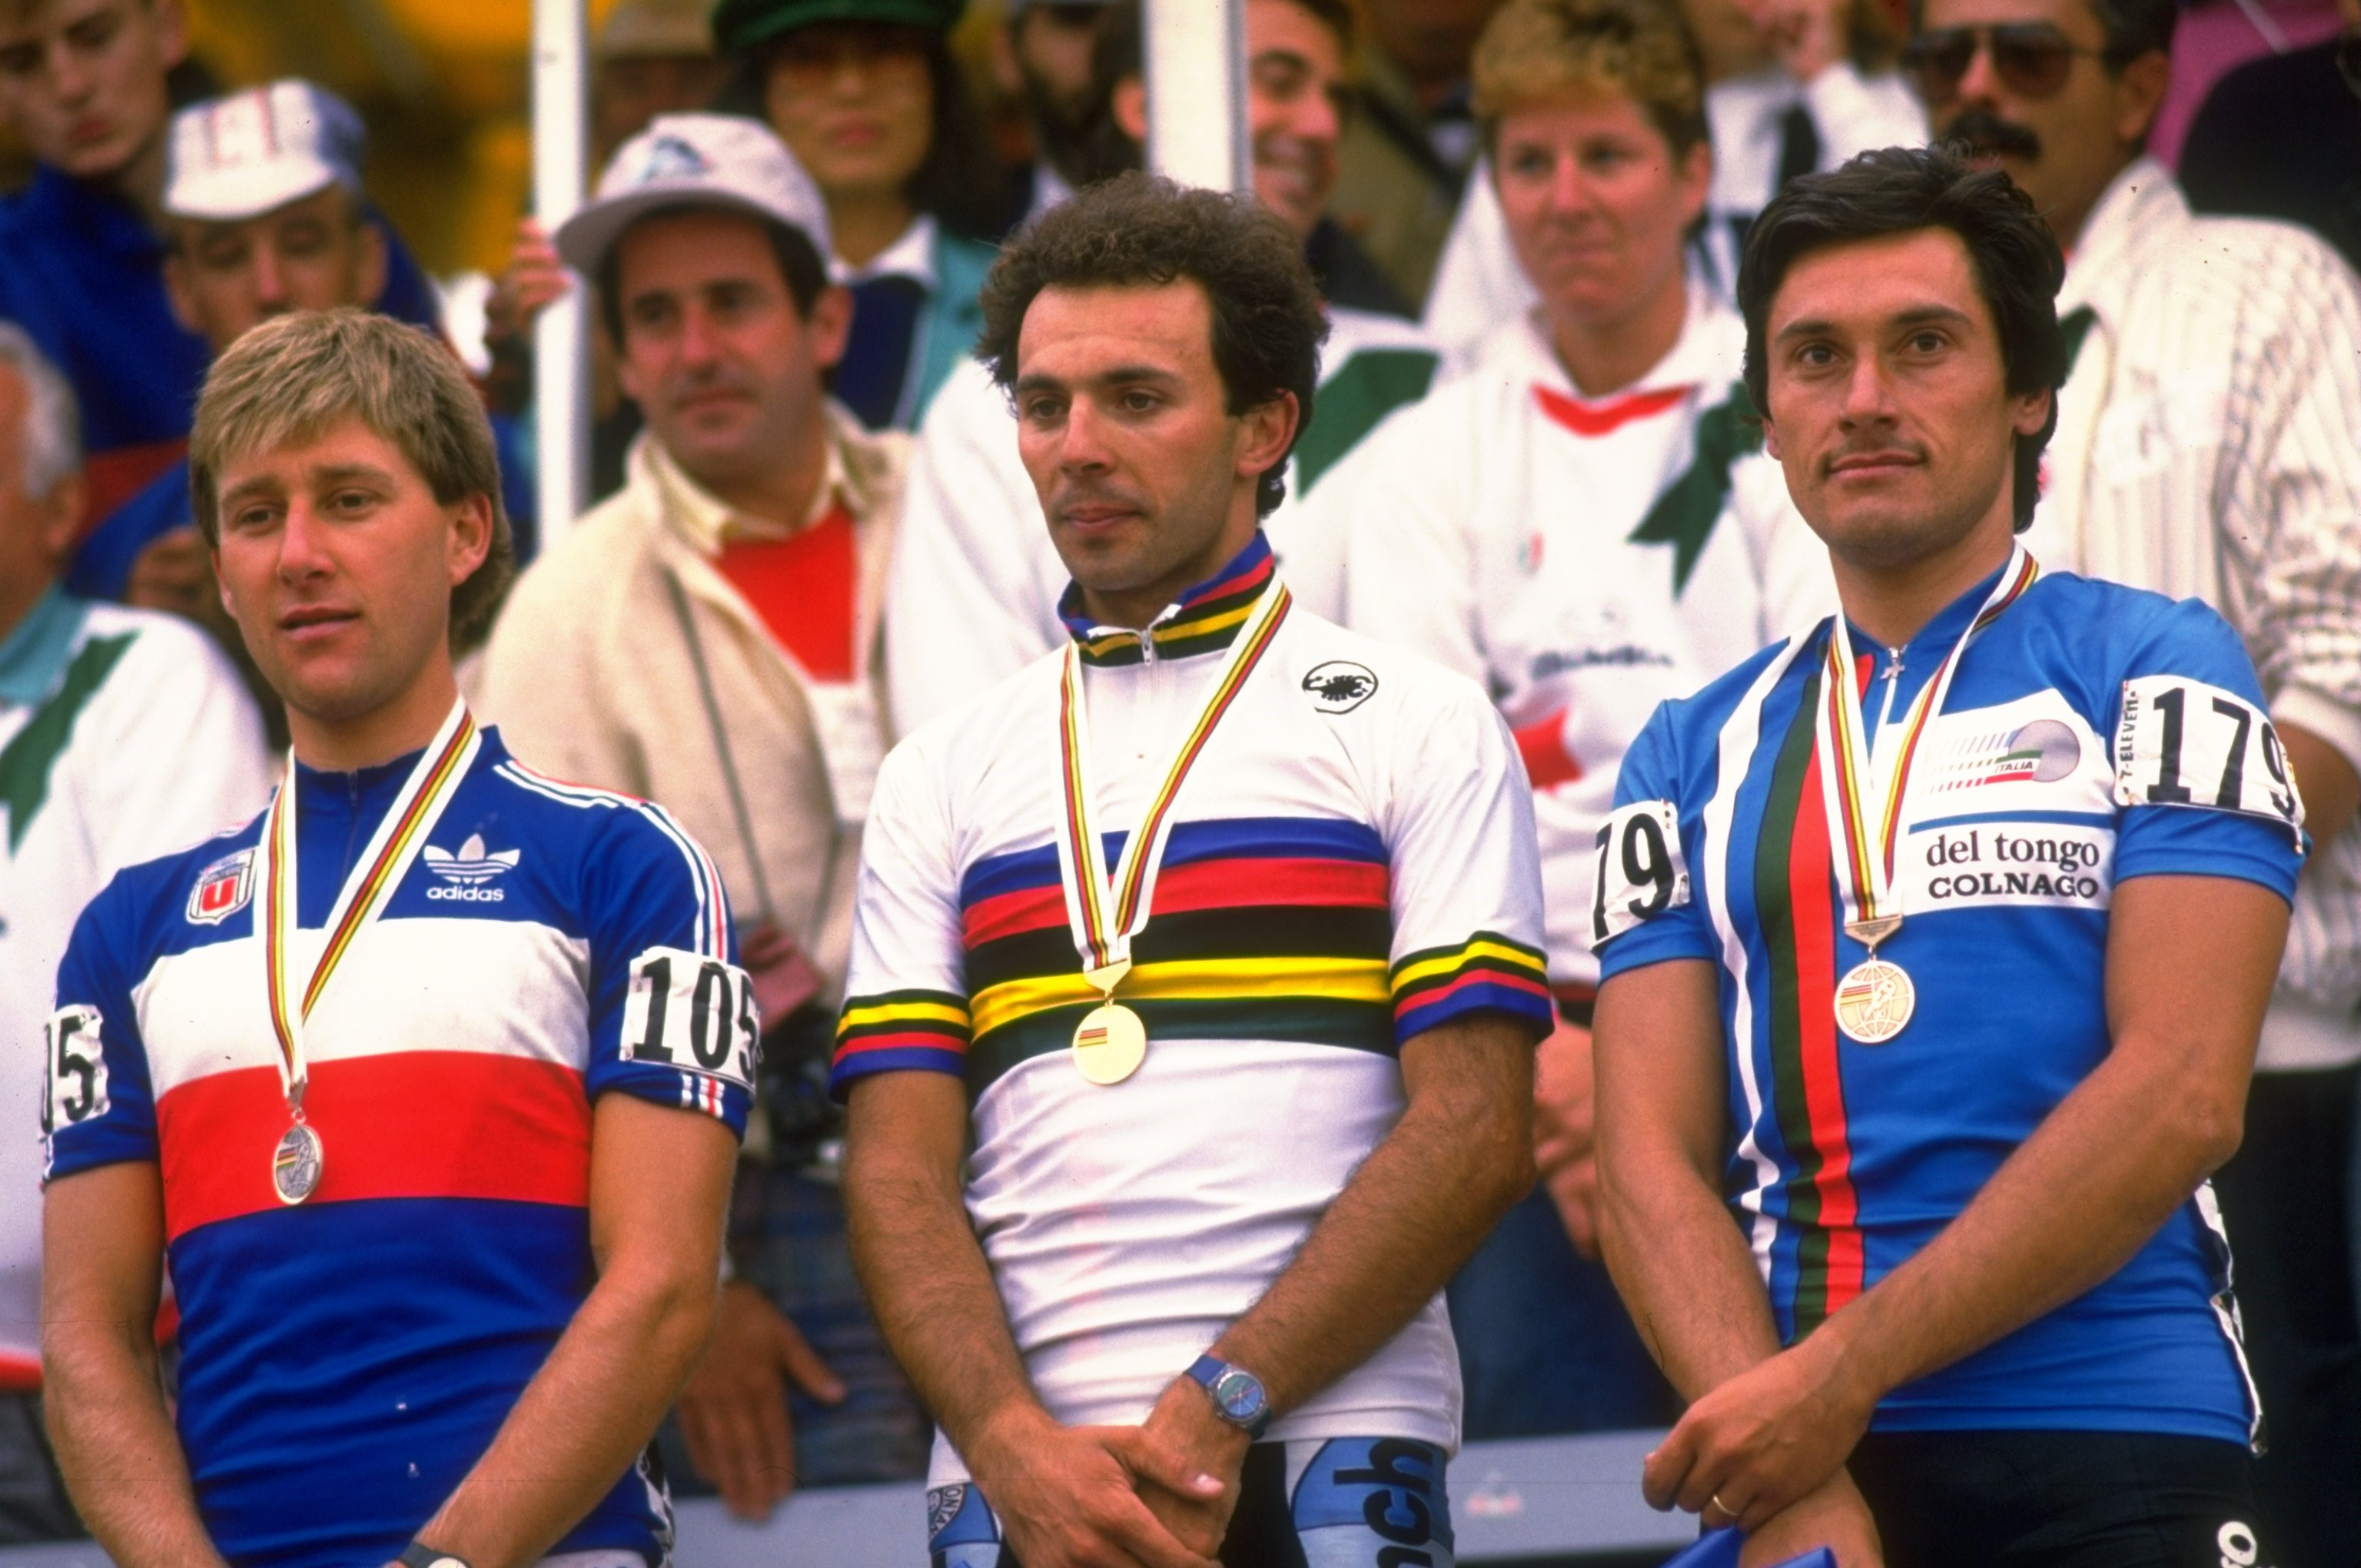 Italy's Moreno Argentin, winner of the 1986 World Championships at Denver, Colorado